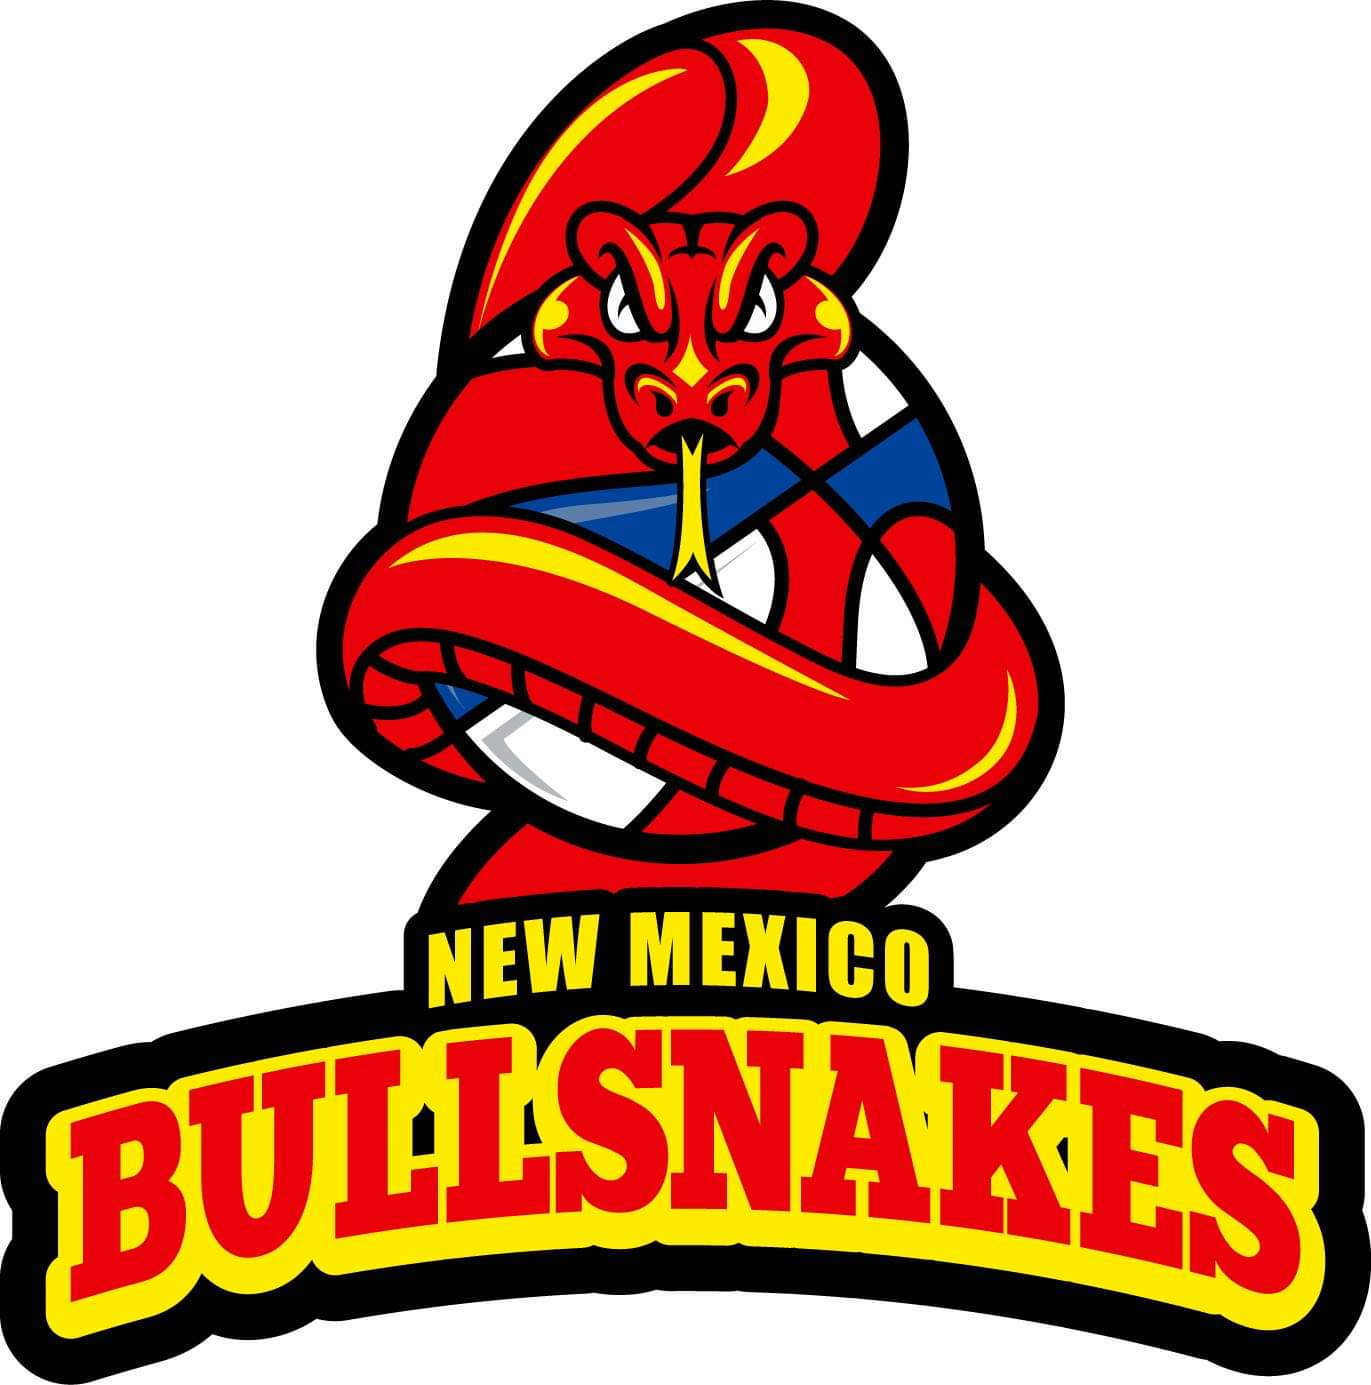 New Mexico Bullsnakes